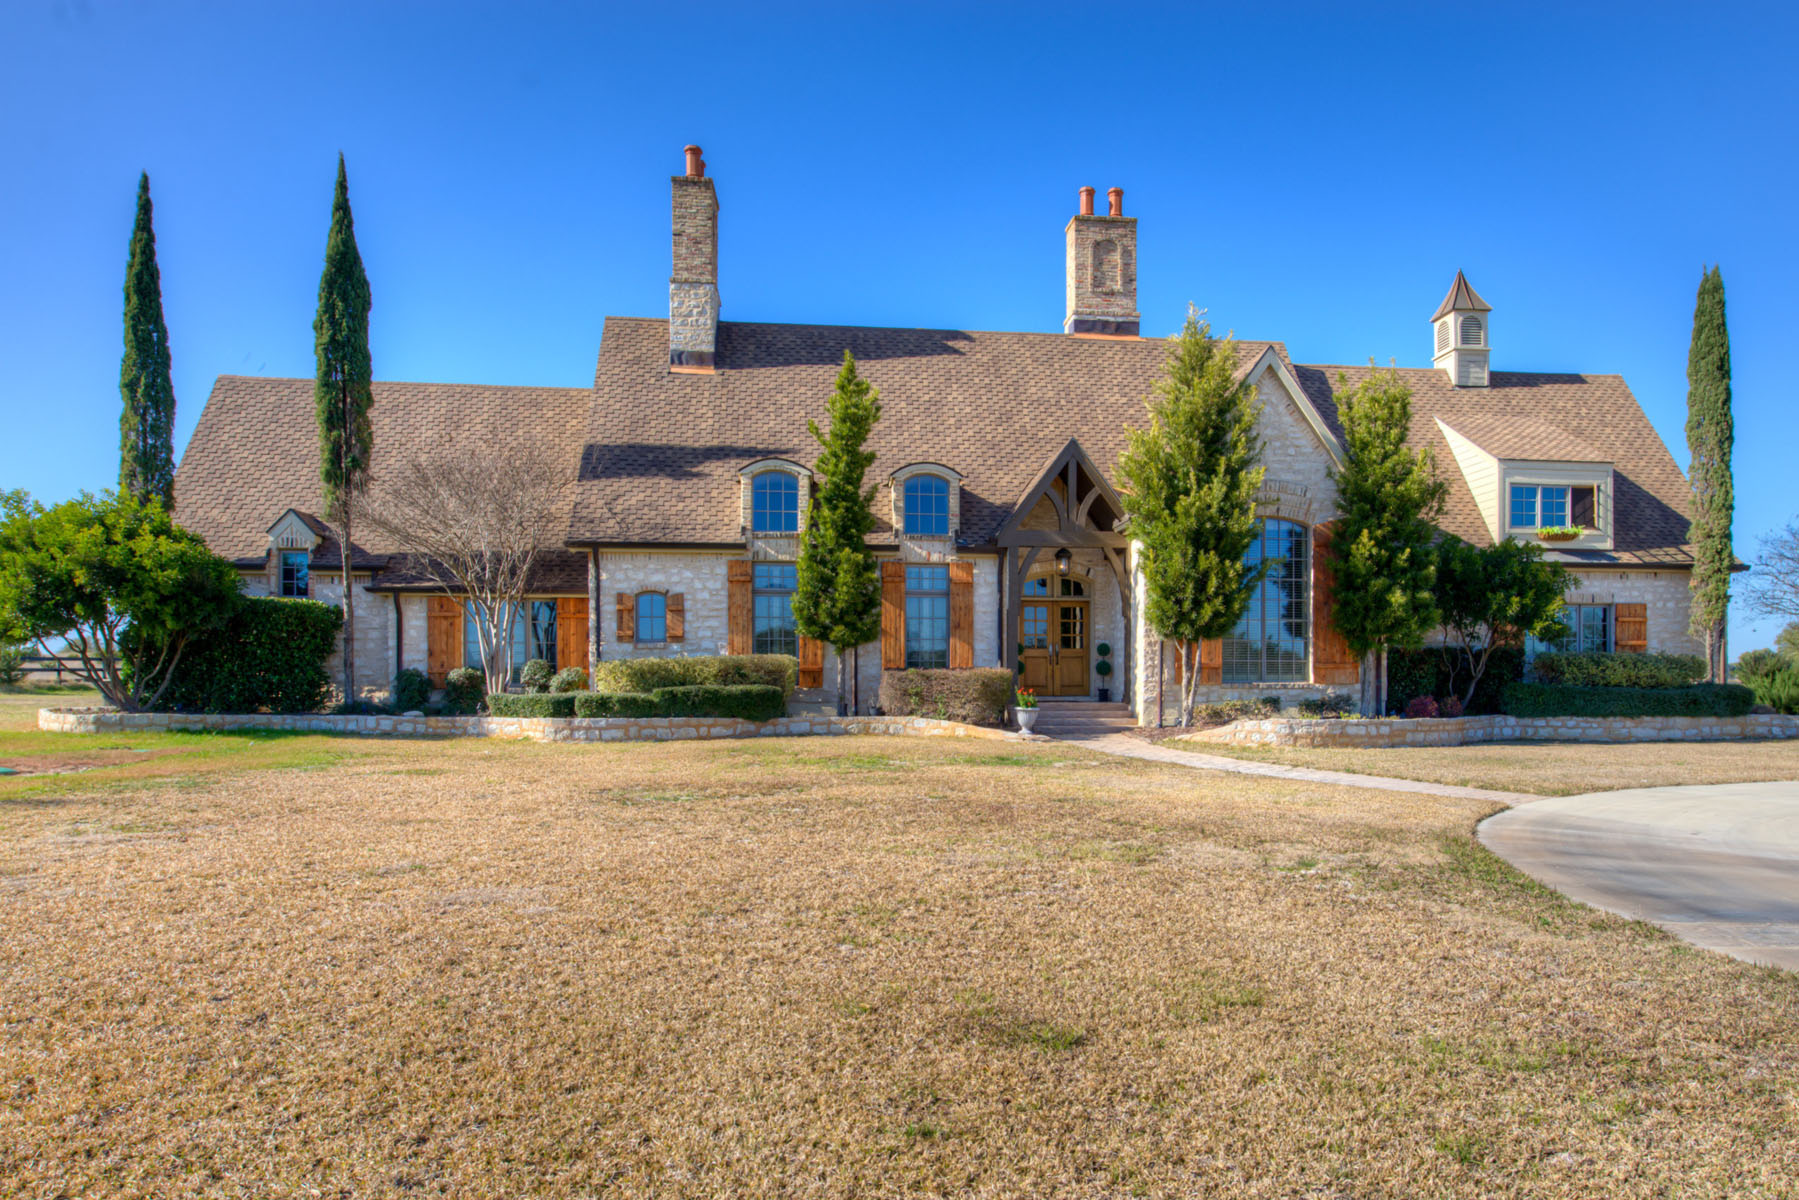 Single Family Home for Sale at 10 Acre Estate 25 Minutes from Downtown Austin 16640 FM 1826 Driftwood, Texas 78619 United States